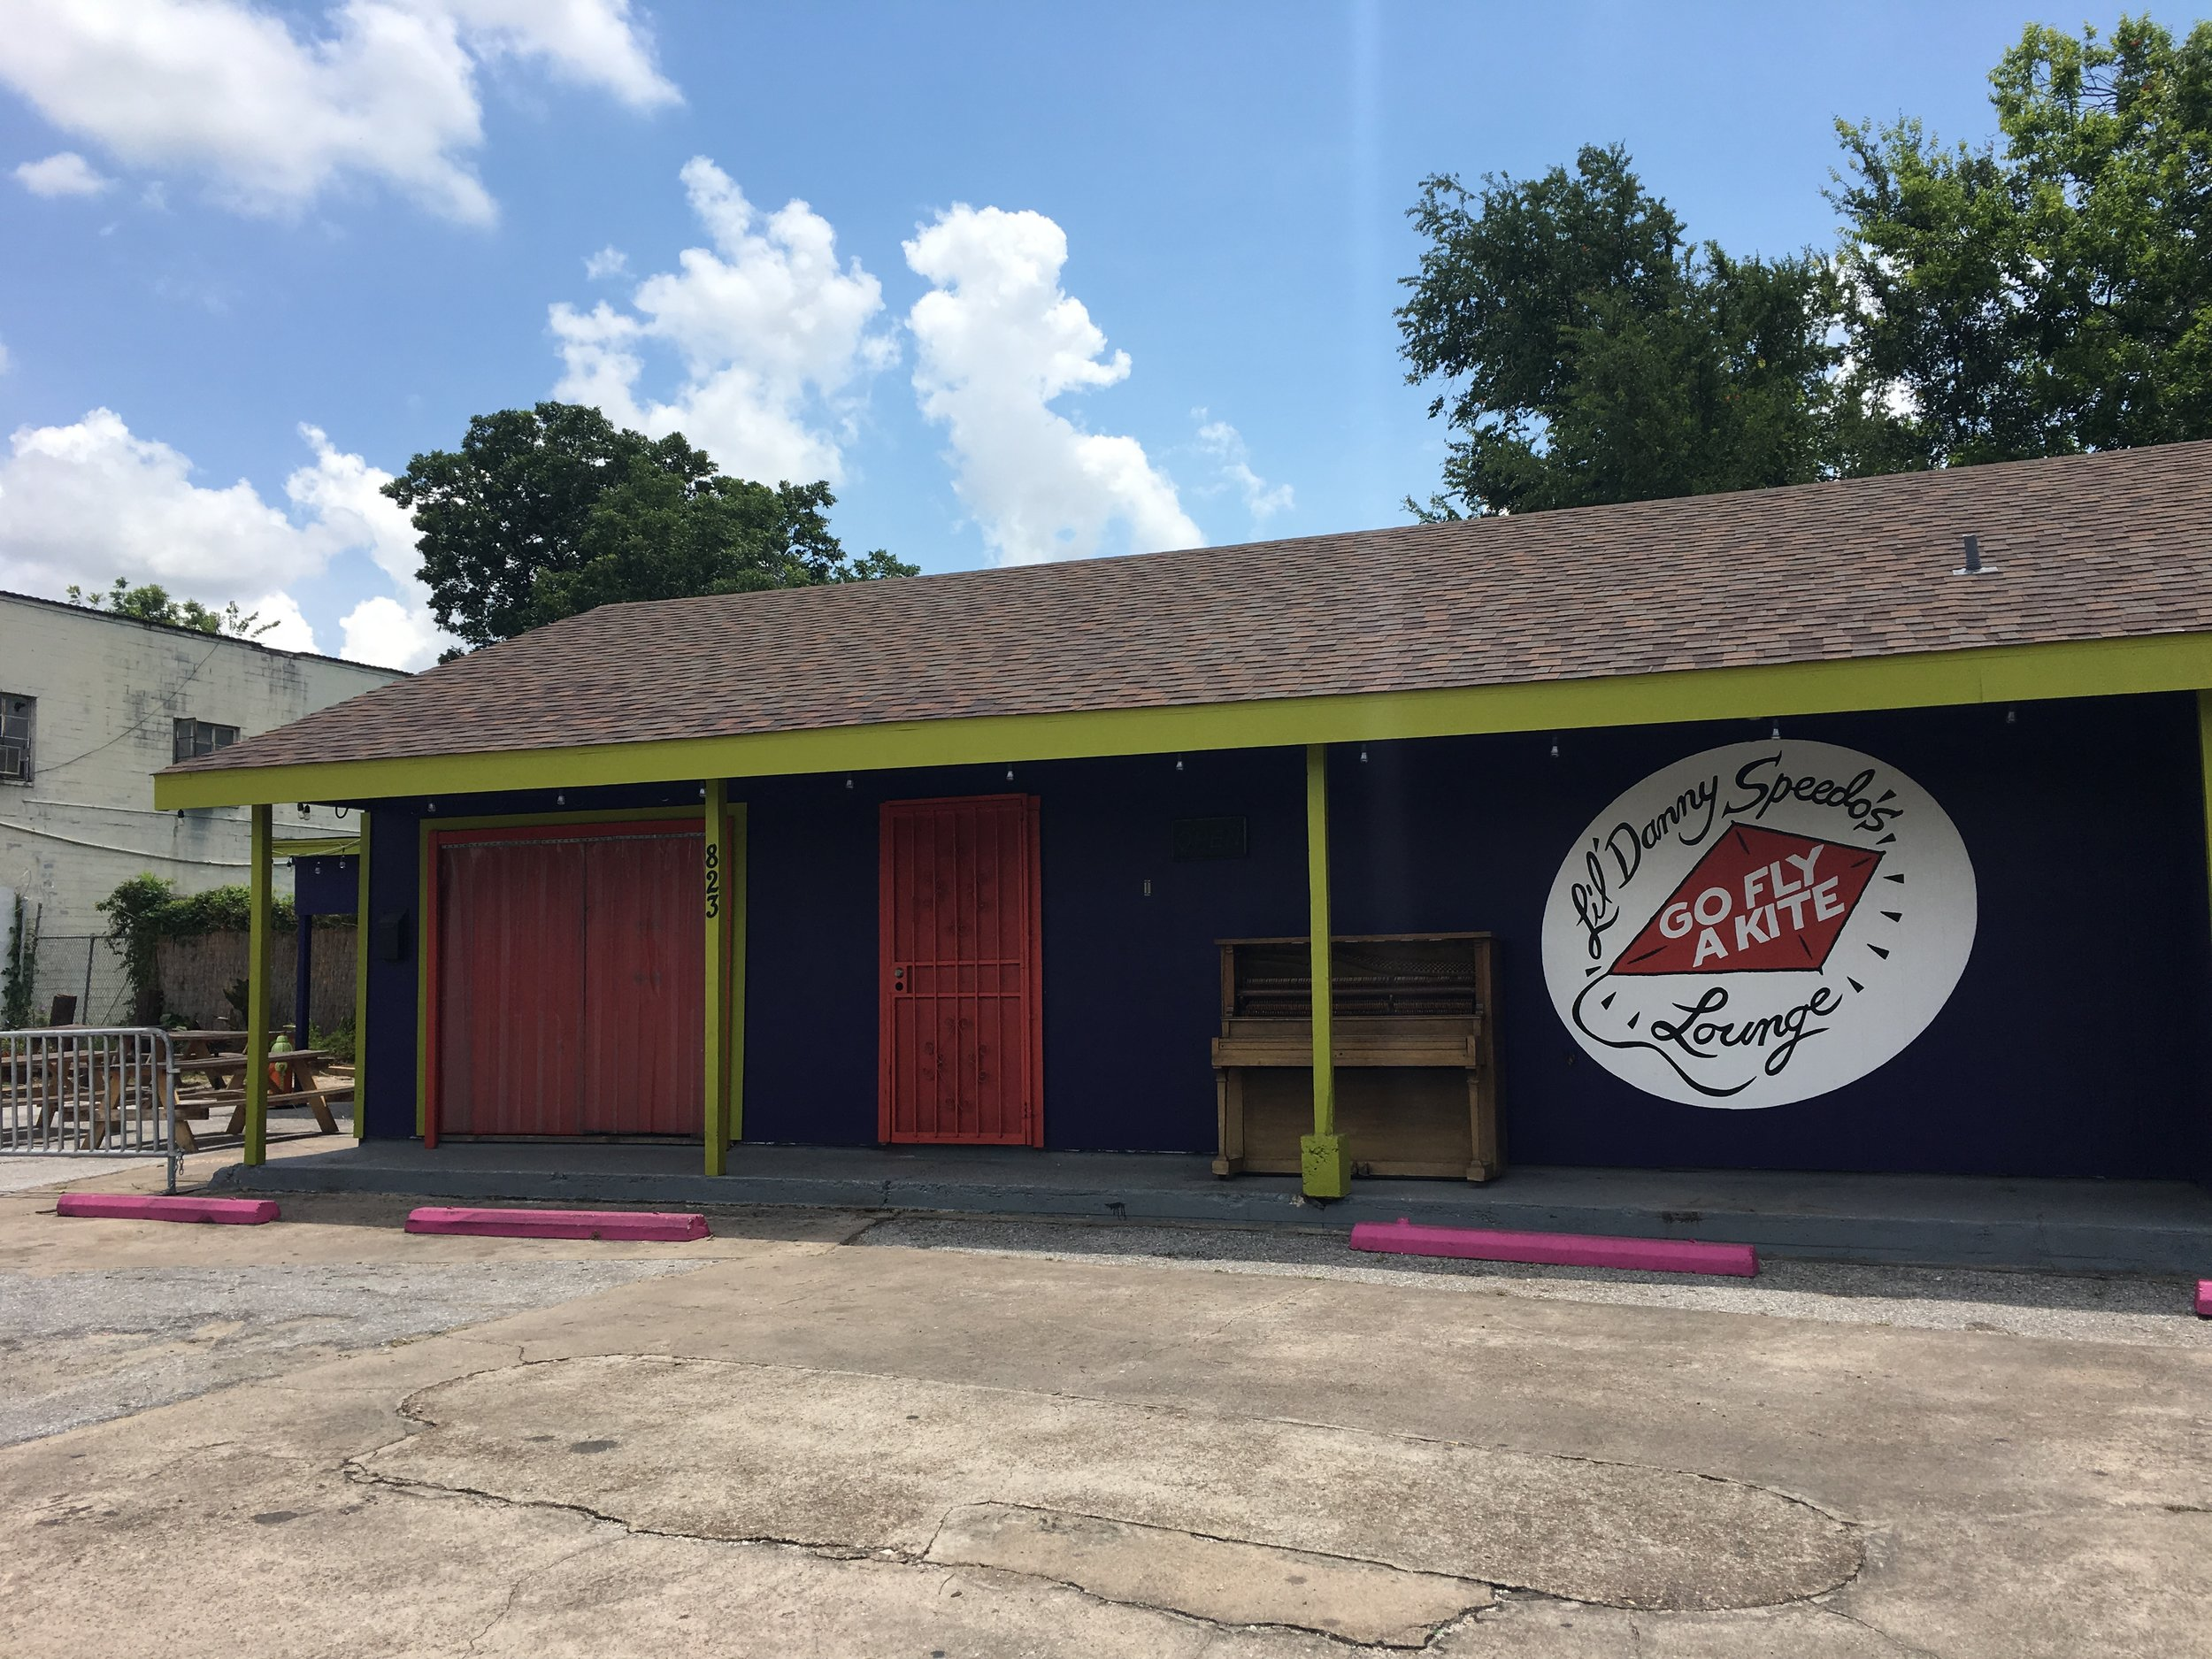 LOCATED AT: 823 Dumble St.   DIVE BAR AND ICE HOUSE WITH POOL TABLES AND OUTDOOR SEATING.